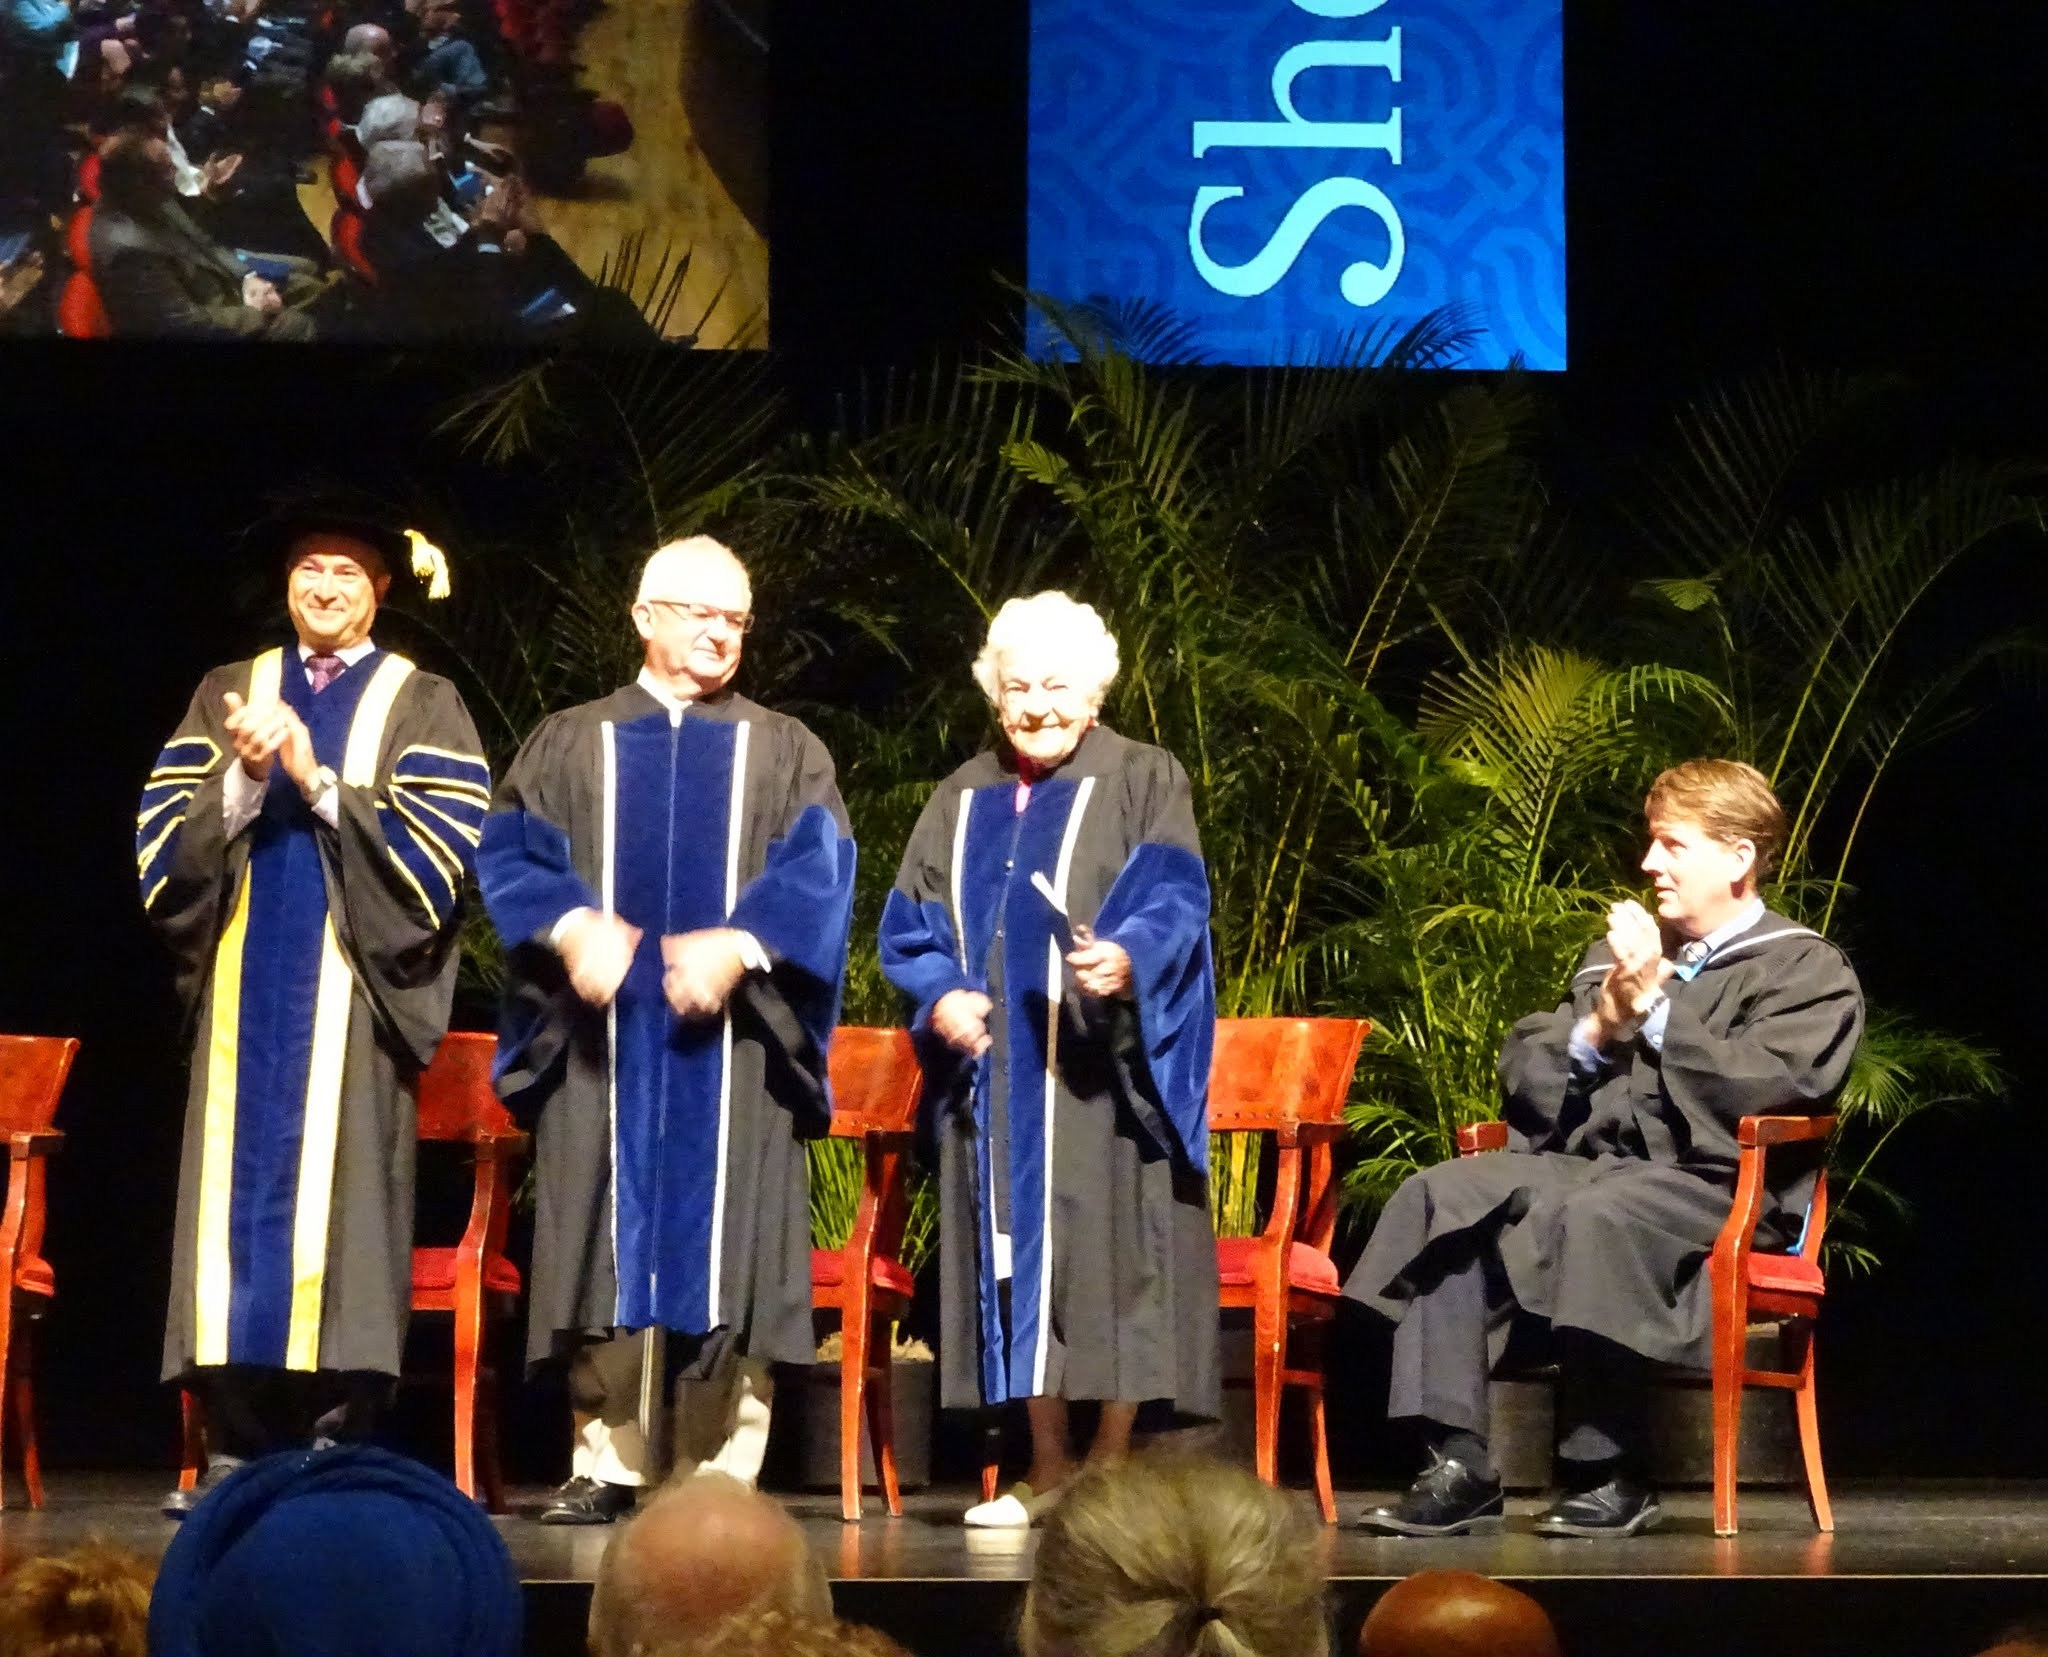 Dr. Jeff Zabudasky (President and Vice Chancellor), Bryan Dawson, Hazel McCallion, Jamie King